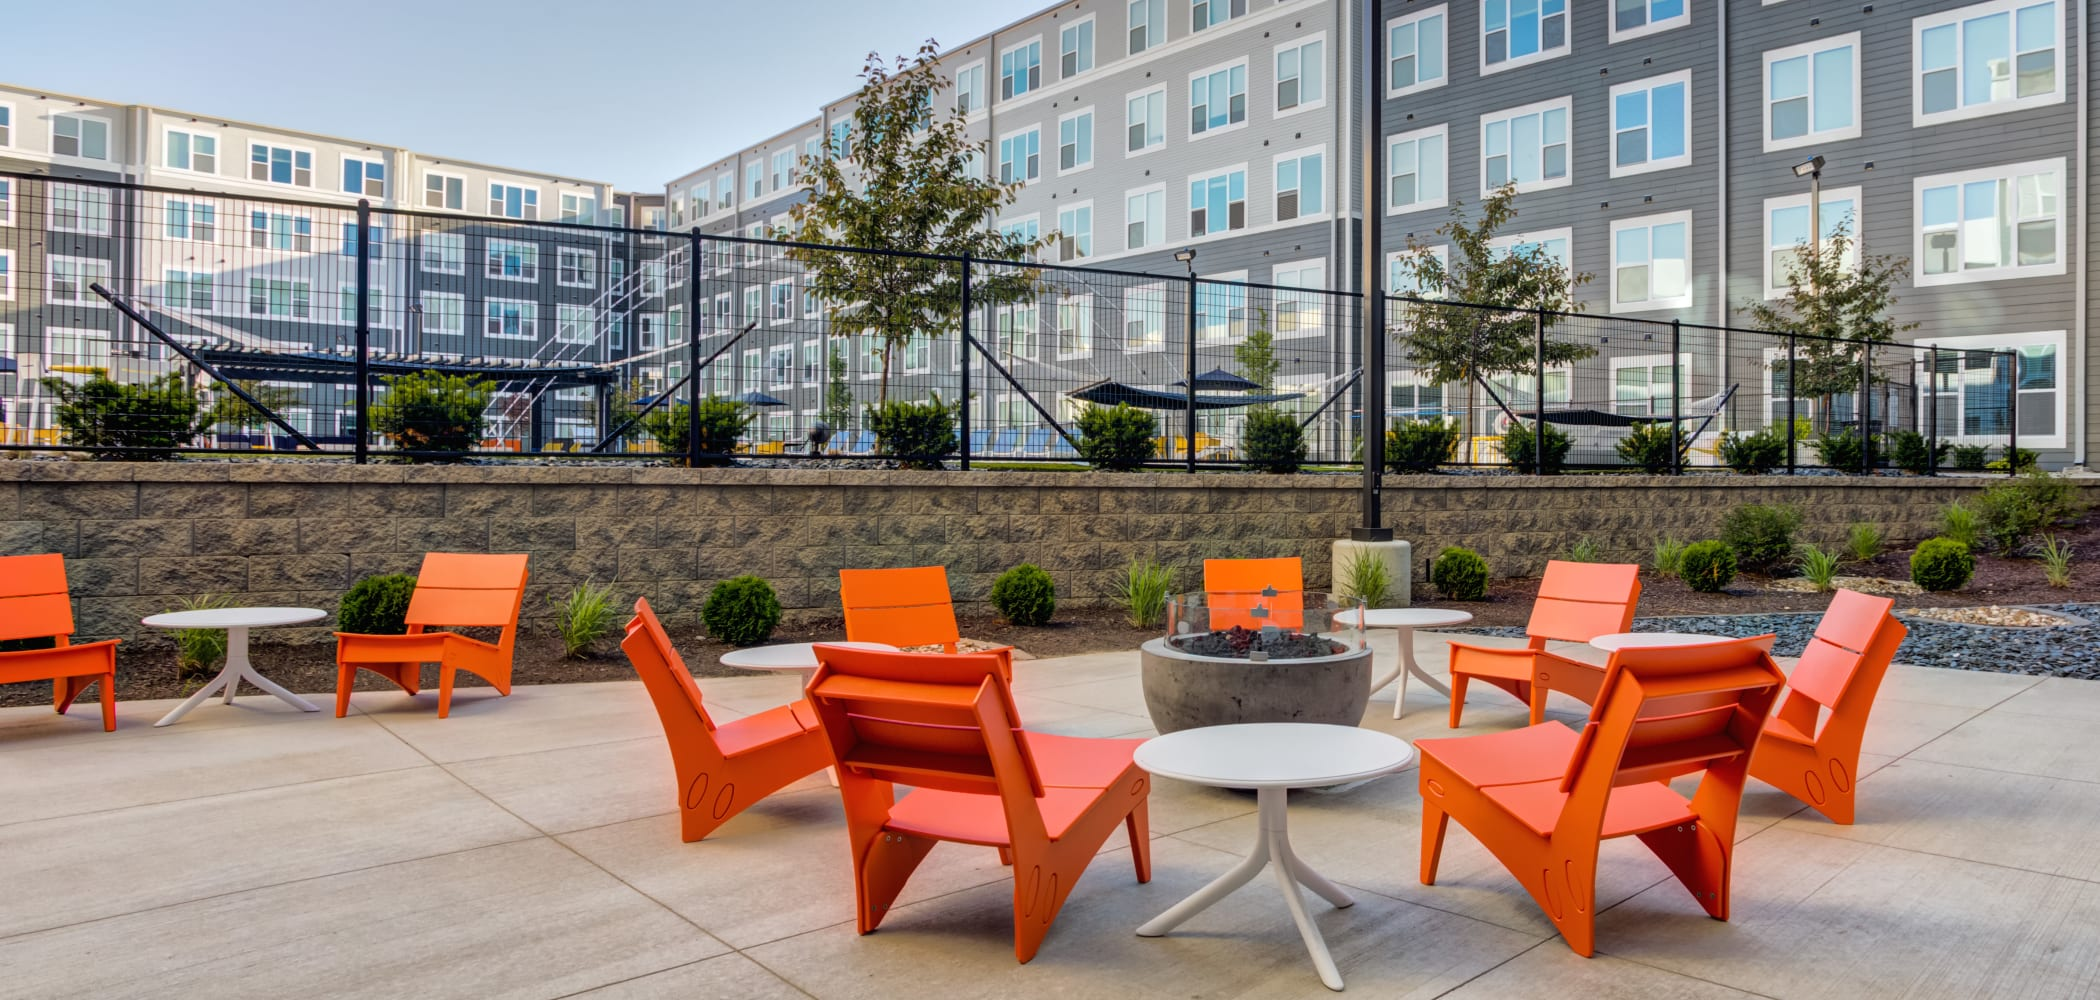 Outdoor Lounge Area at LATITUDE at River Landing in Coralville, Iowa